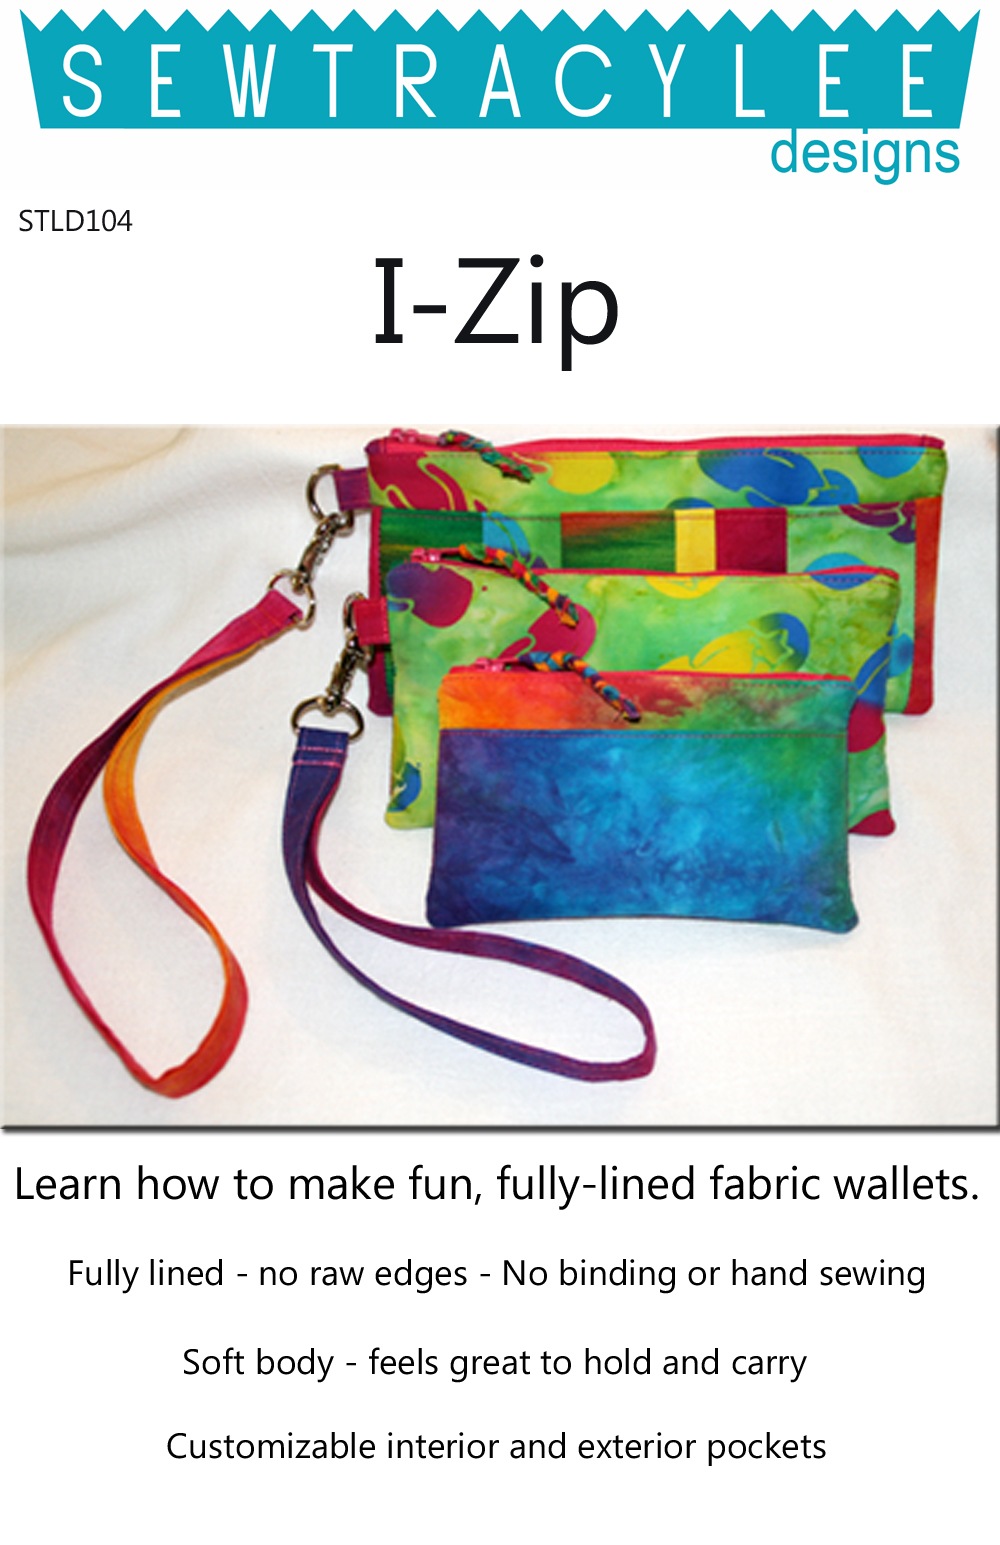 I-Zip-sewing-pattern-Sew-TracyLee-Designs-front